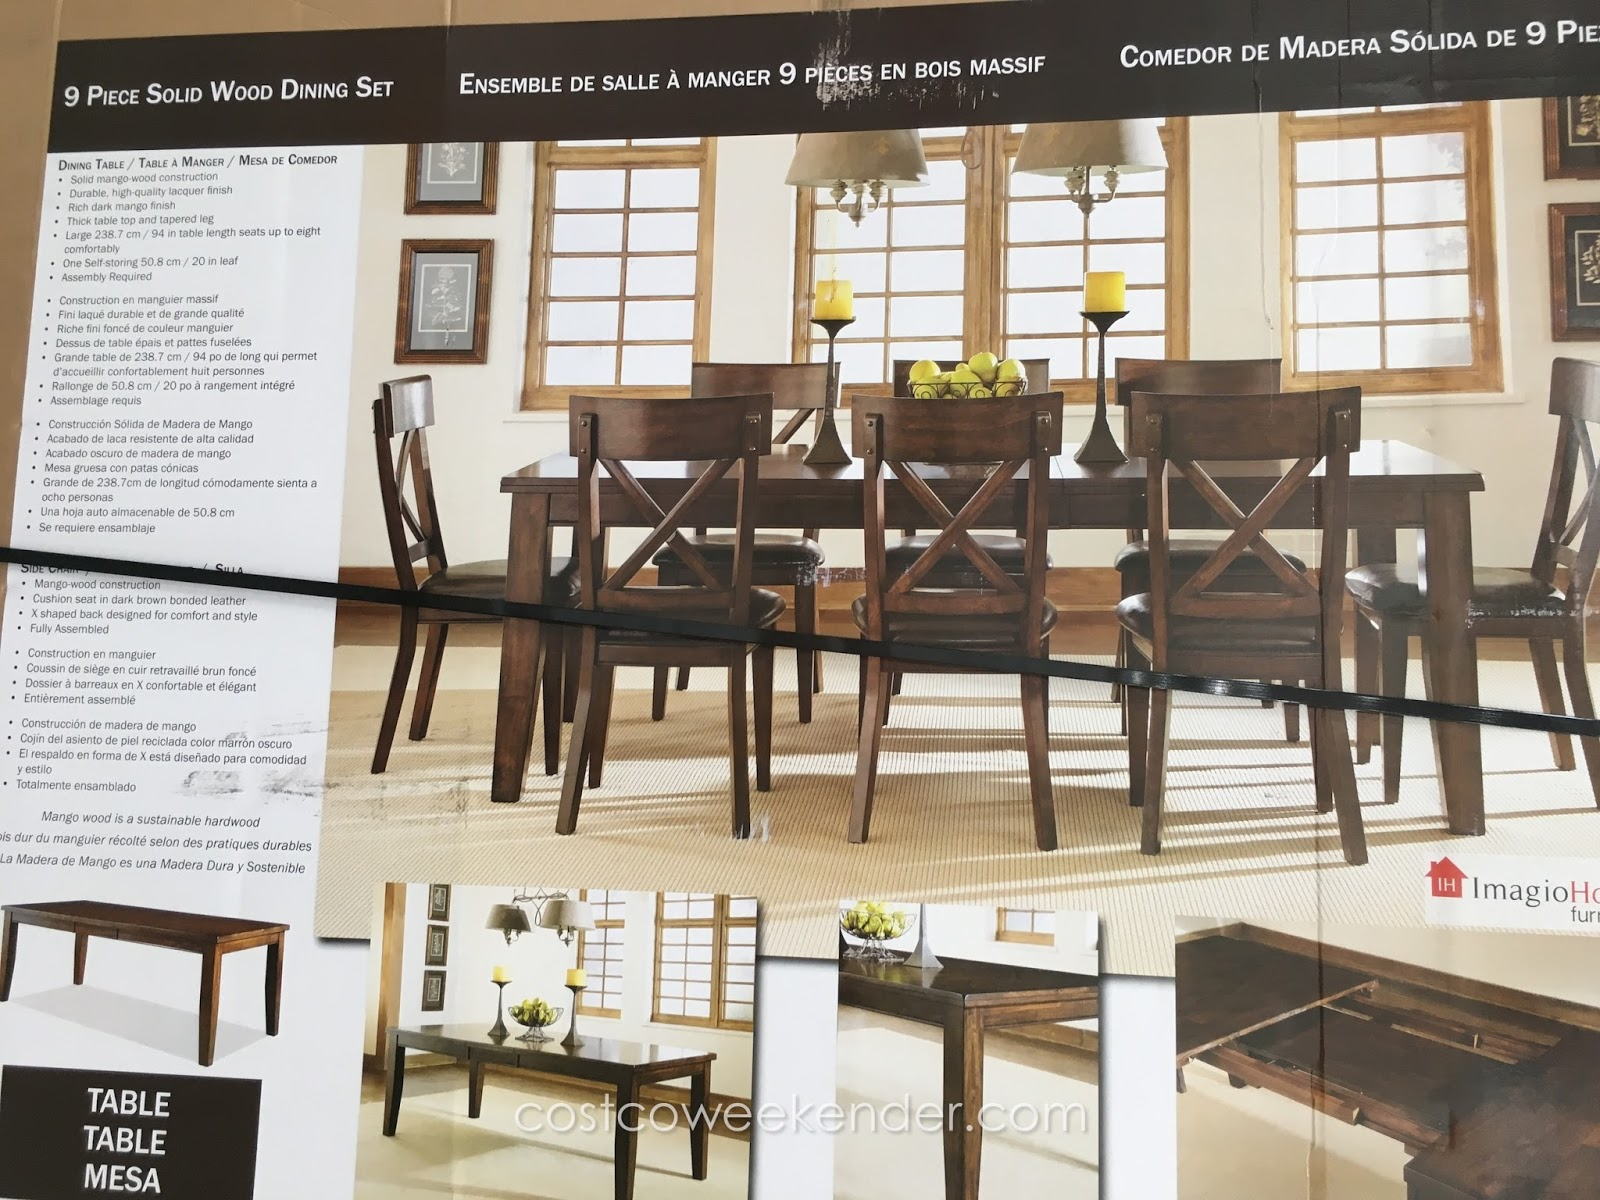 Imagio Home 9 piece Solid Wood Dining Set Costco Weekender : imagio home 9pc solid wood dining set costco 521712 from www.costcoweekender.com size 1600 x 1200 jpeg 380kB